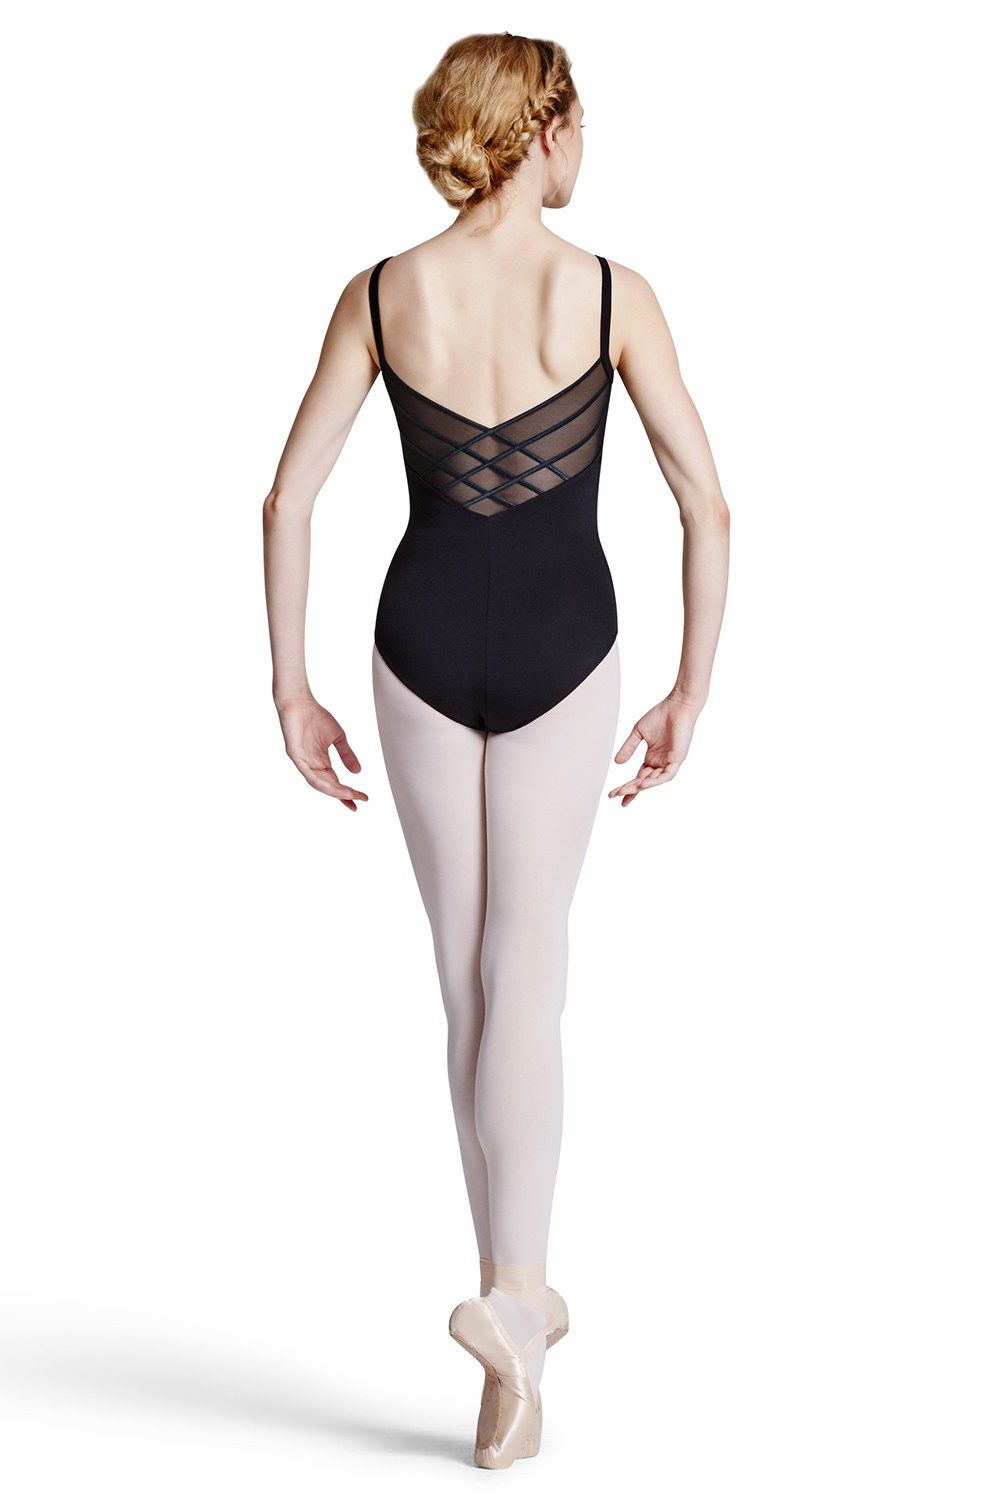 Allnatt Women's Dance Leotards